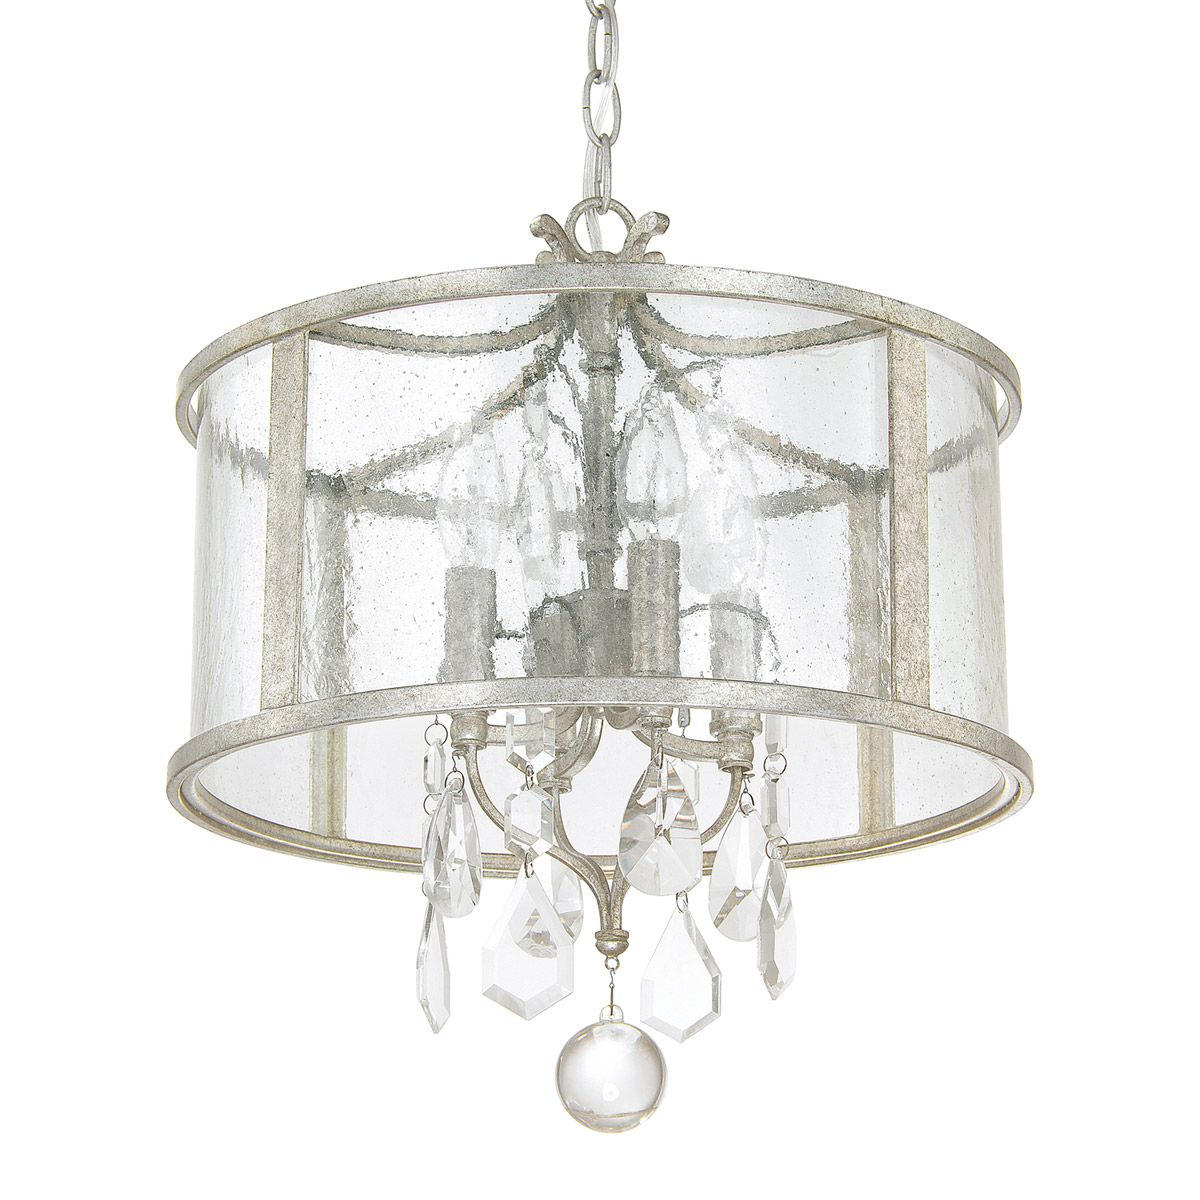 Capital lighting 9484as cr blakely 4 light 15 inch antique silver capital lighting blakely 4 light pendant in antique silver with antique glass with clear crystals 9484as cr aloadofball Gallery